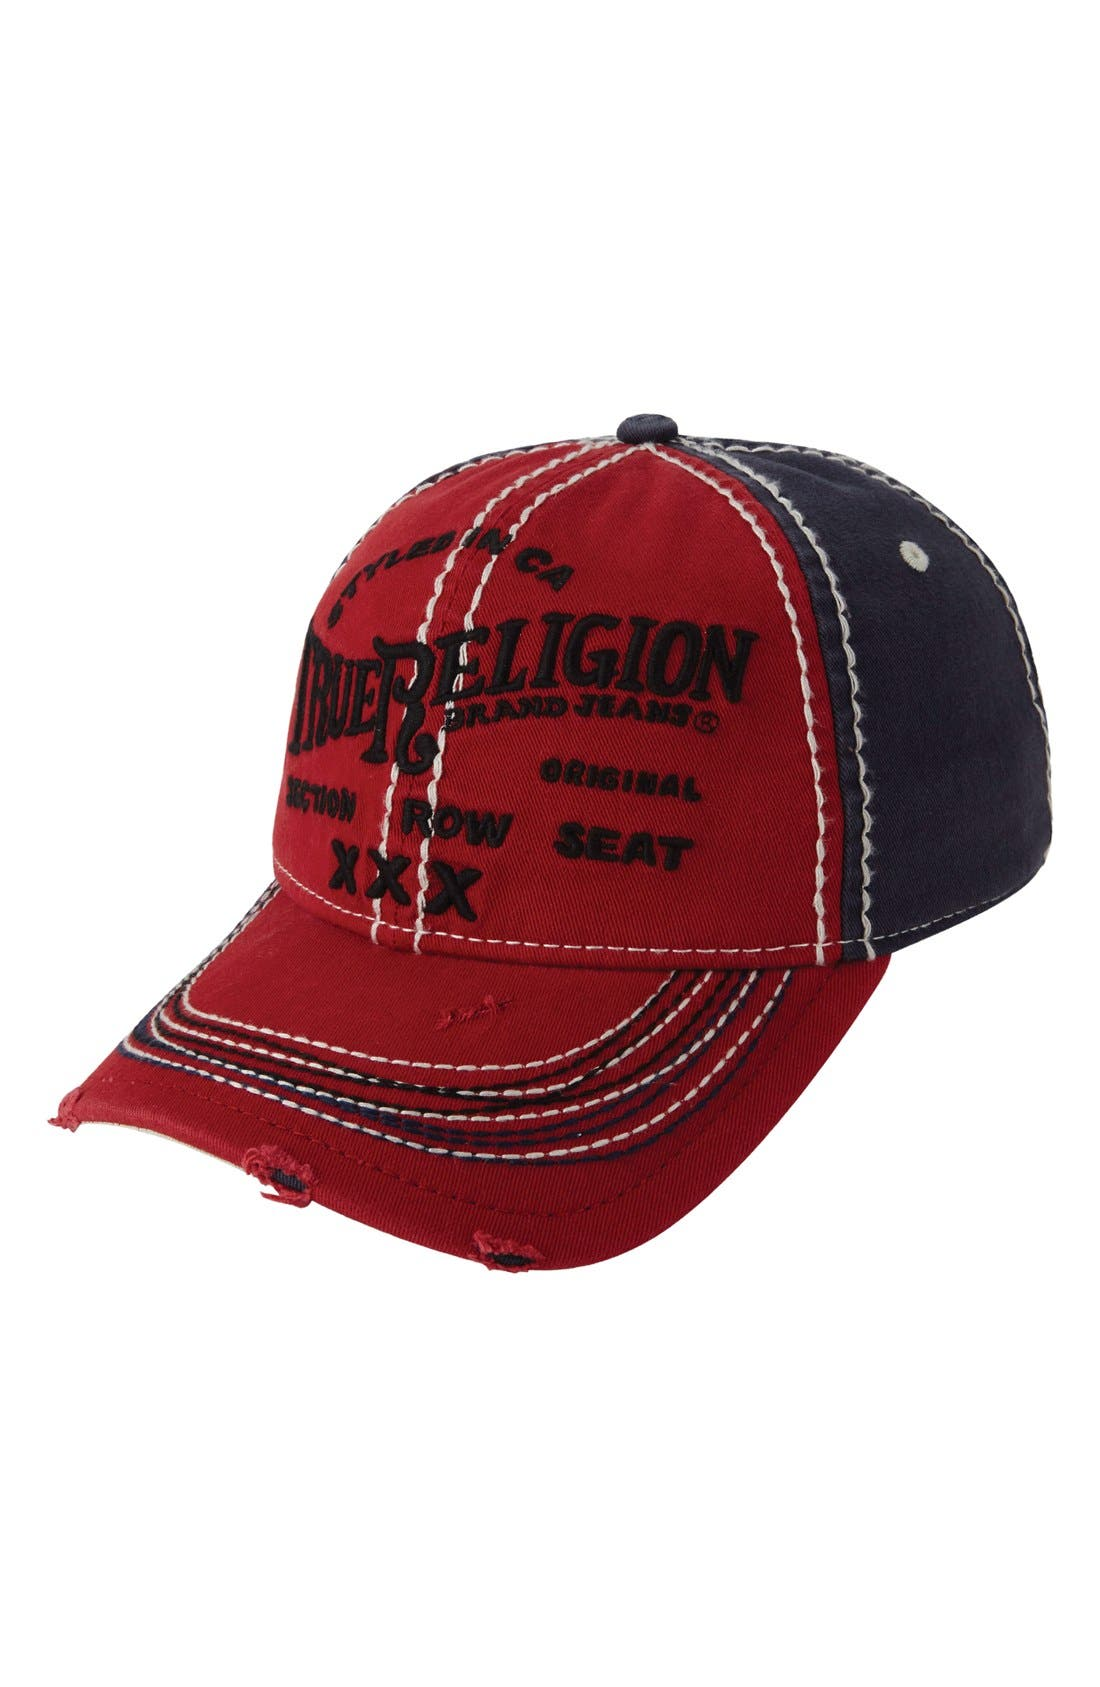 'Triple X' Baseball Cap,                             Main thumbnail 6, color,